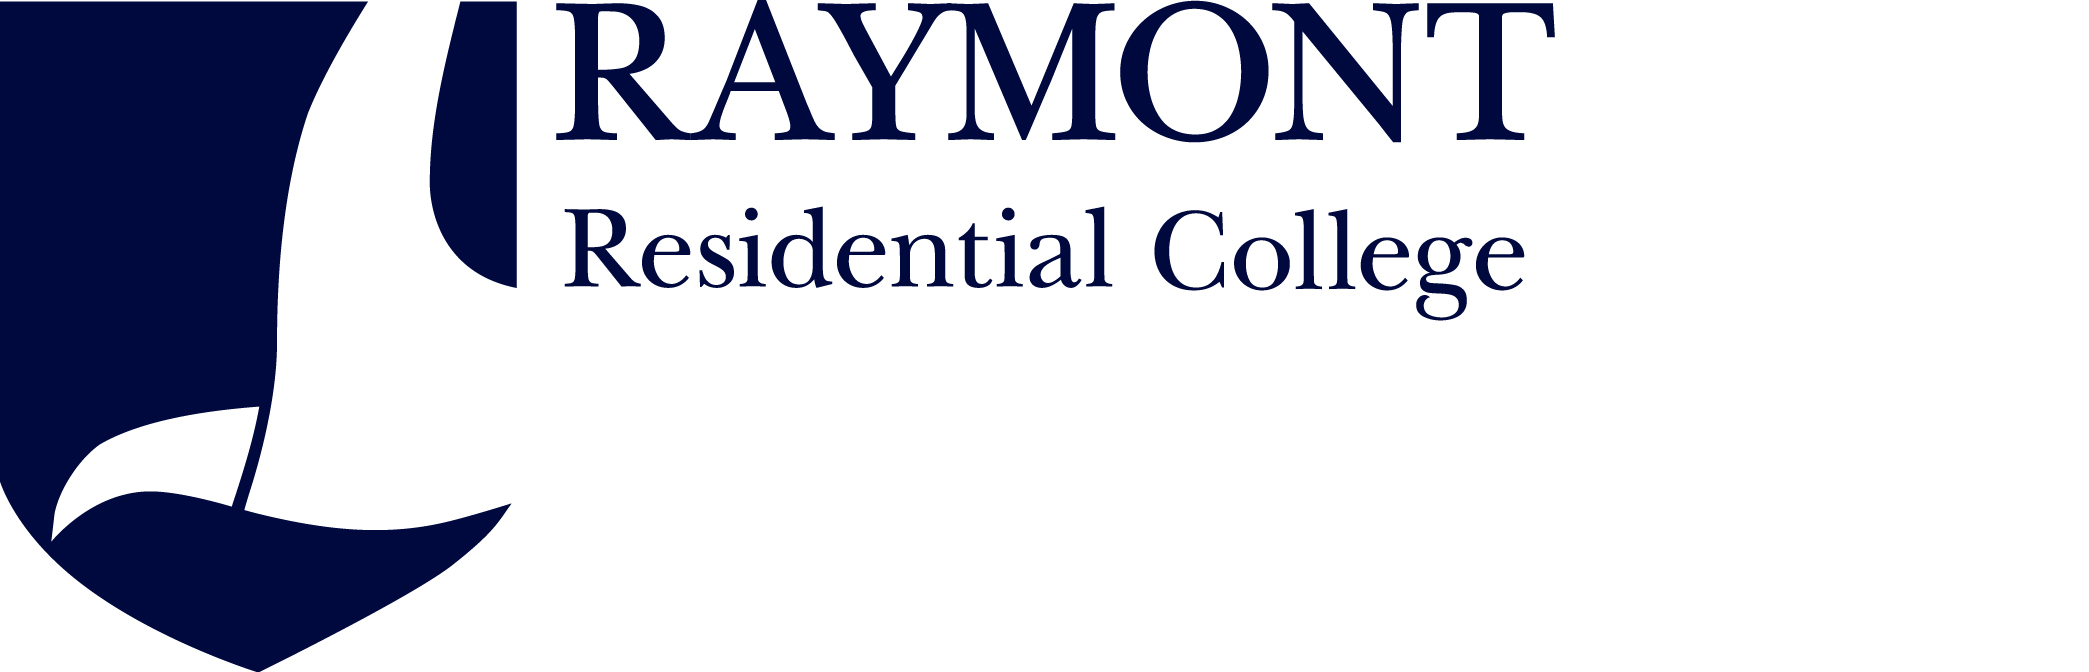 Raymont Residential College is home to 120 students from around Australia, mainly regional areas, and overseas. It is a close-knit, caring community that provides accommodation and all meals for students attending QUT, UQ, Griffith and ACU or other tertiary institutions within Brisbane. We are located in Auchenflower which is within 4km of the major inner-city university campuses and the city centre. Raymont is close to all forms of public transport to get people to where they need to go!  Raymont is fully catered with private rooms, security, outstanding facilities and services which include unlimited WiFi internet, pool, music practice rooms, fully equipped gym, volleyball court, library and off-street parking. Our students have access to a vibrant social program, academic support, social sport, a Leadership program and excellent pastoral care. Prospective students and parents are encouraged to visit us online at www.raymont.com.au.